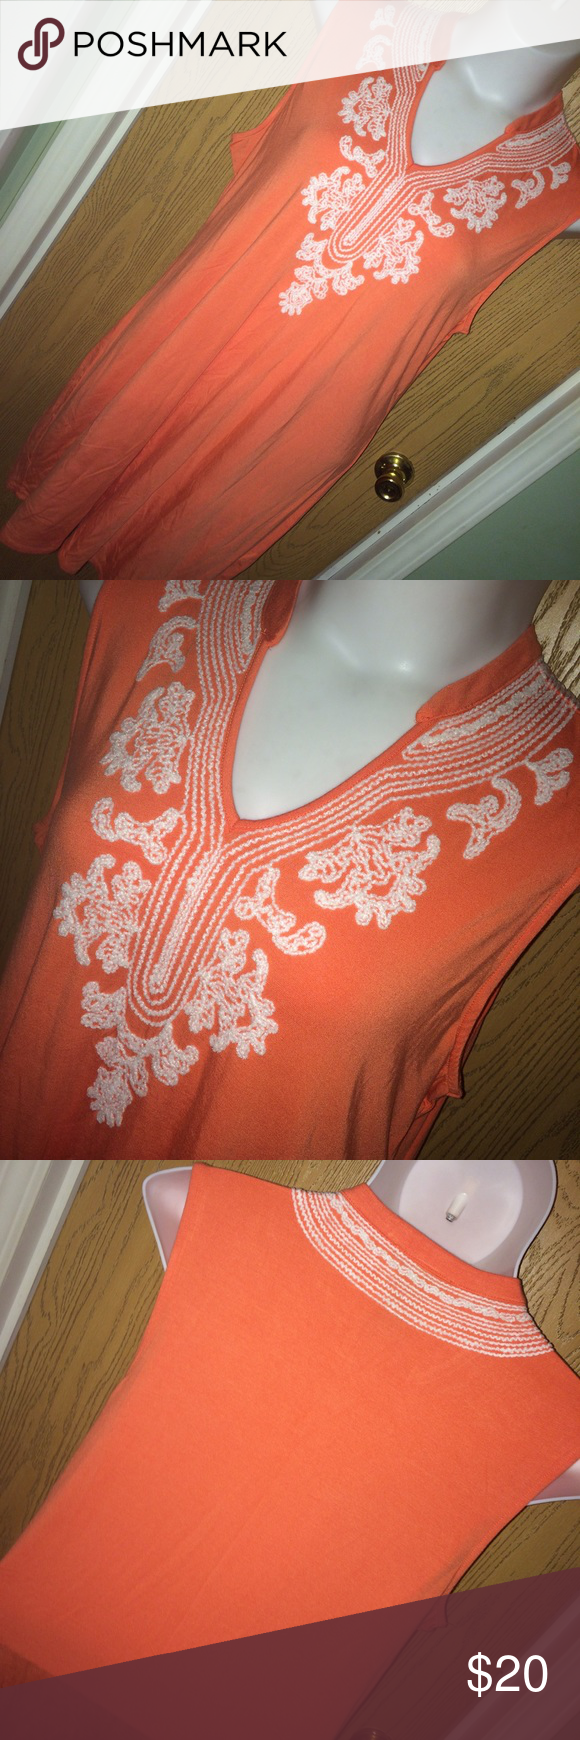 """Coral embroidered tank dress Cute coral and white embroidered tank dress. Size XXL 95% rayon 5% spandex. 24"""" from armpit to armpit, 29"""" from armpit to hem Grace Elements Dresses Mini"""